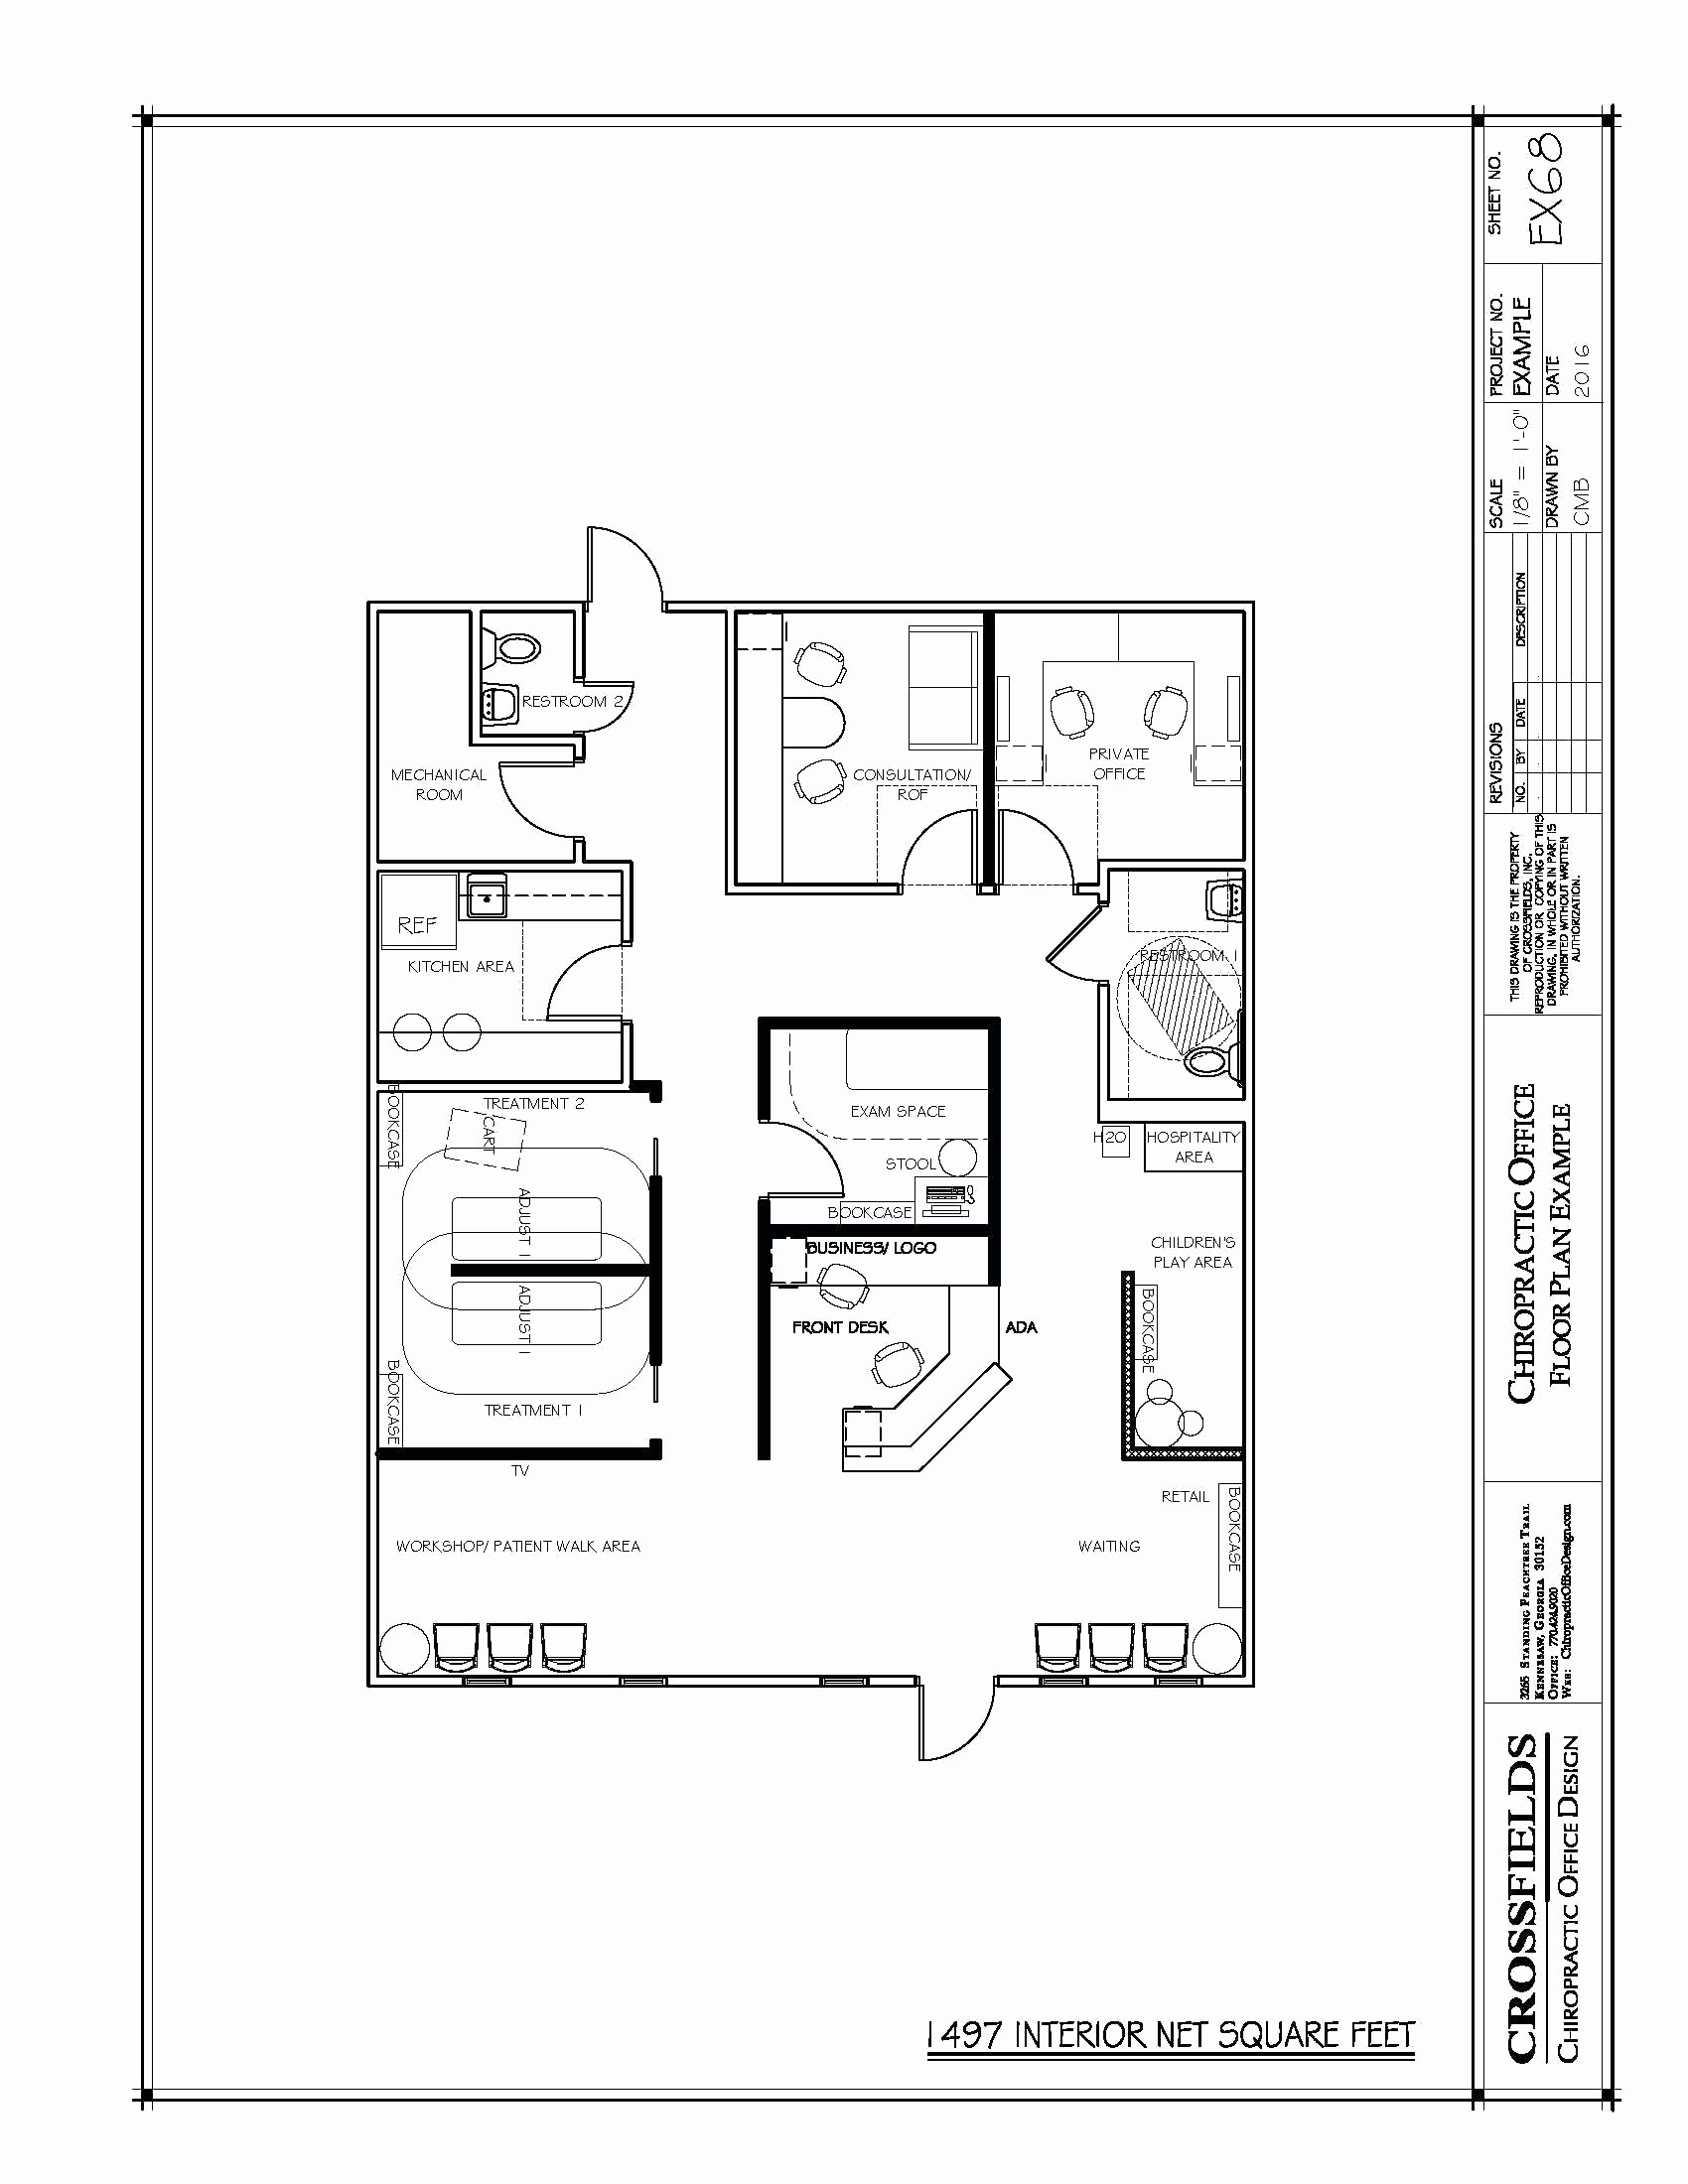 Free Floor Plan Template Luxury Fice Layout software Free Templates to Make Fice Plans